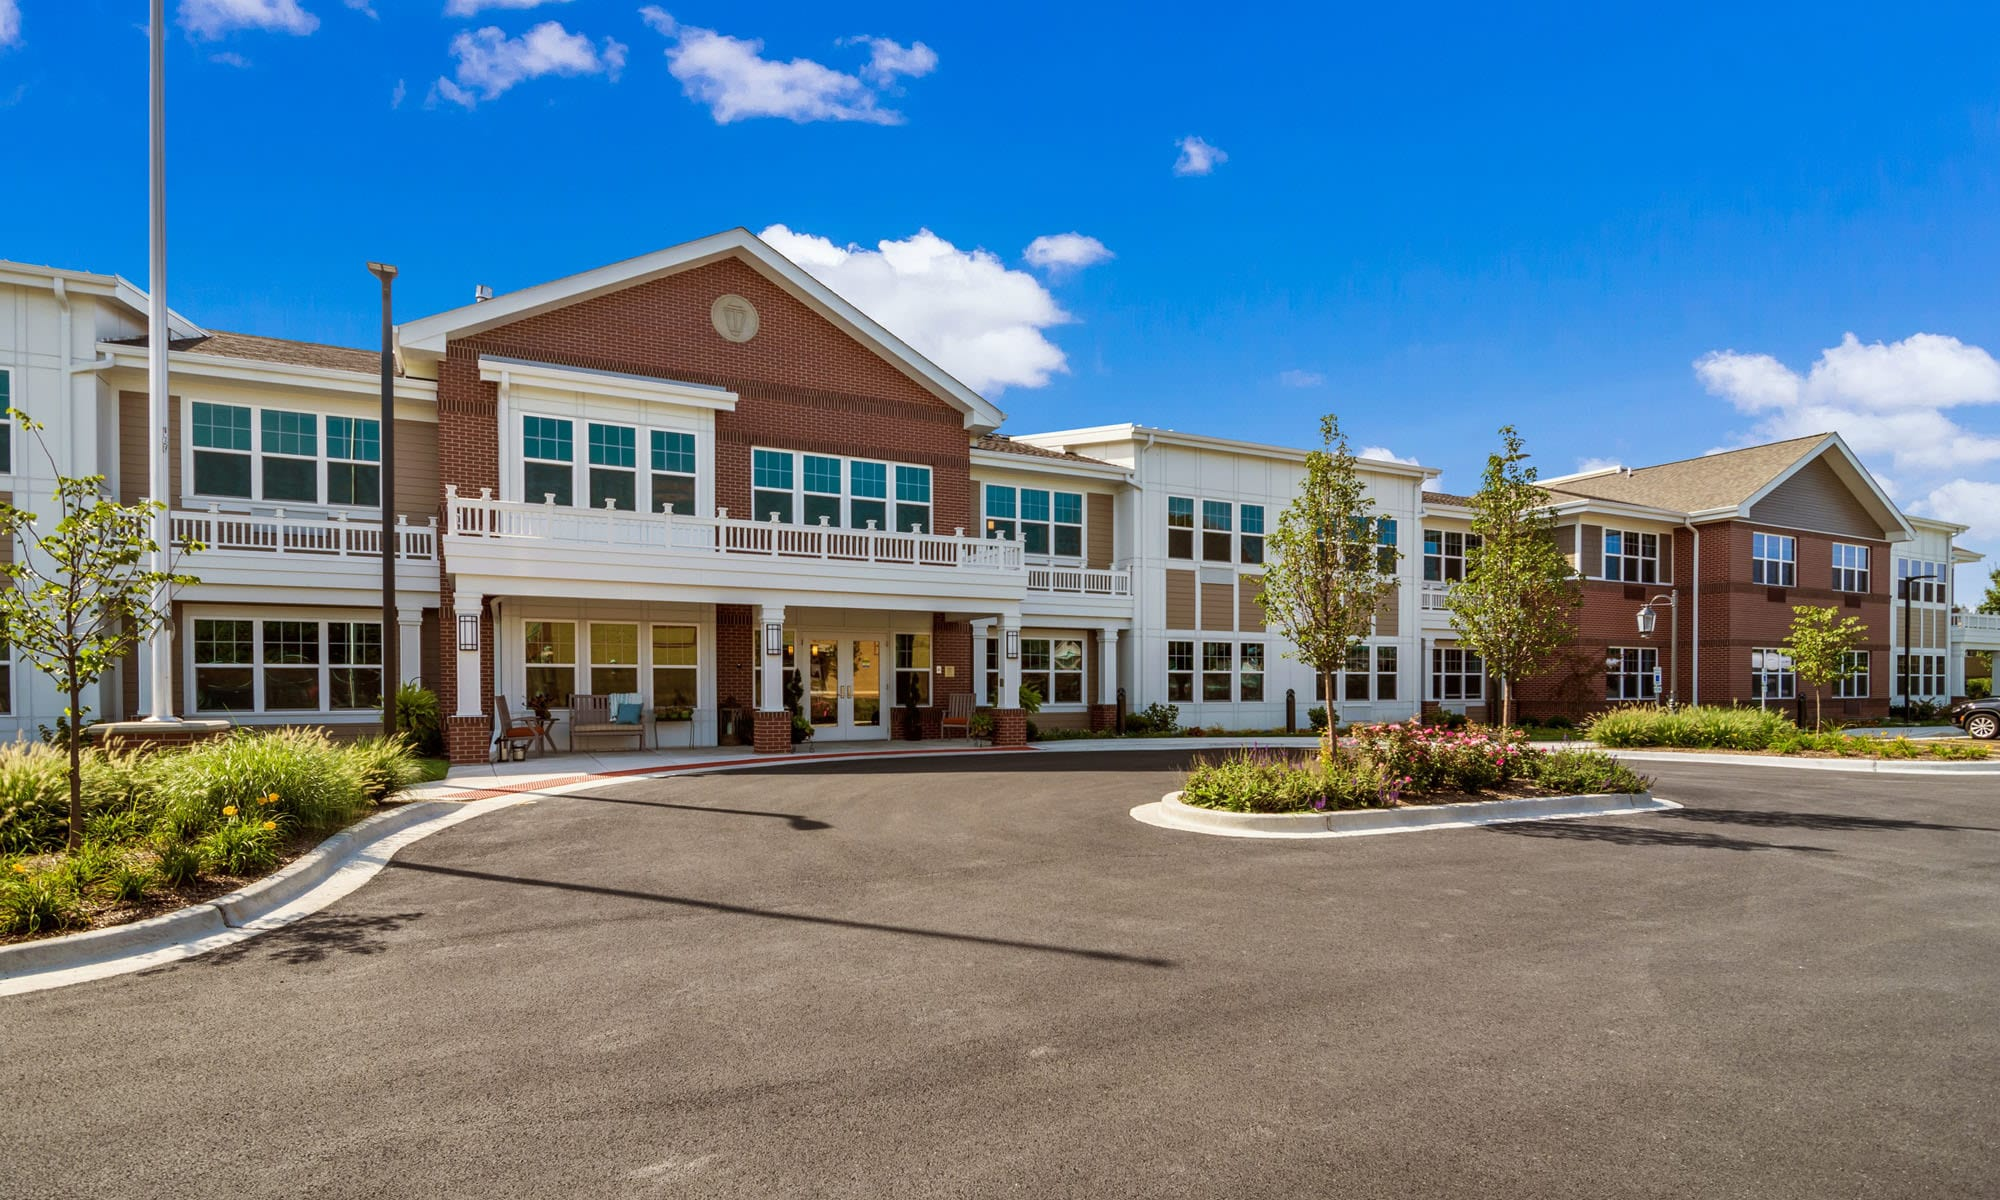 Senior living in Oak Lawn, IL